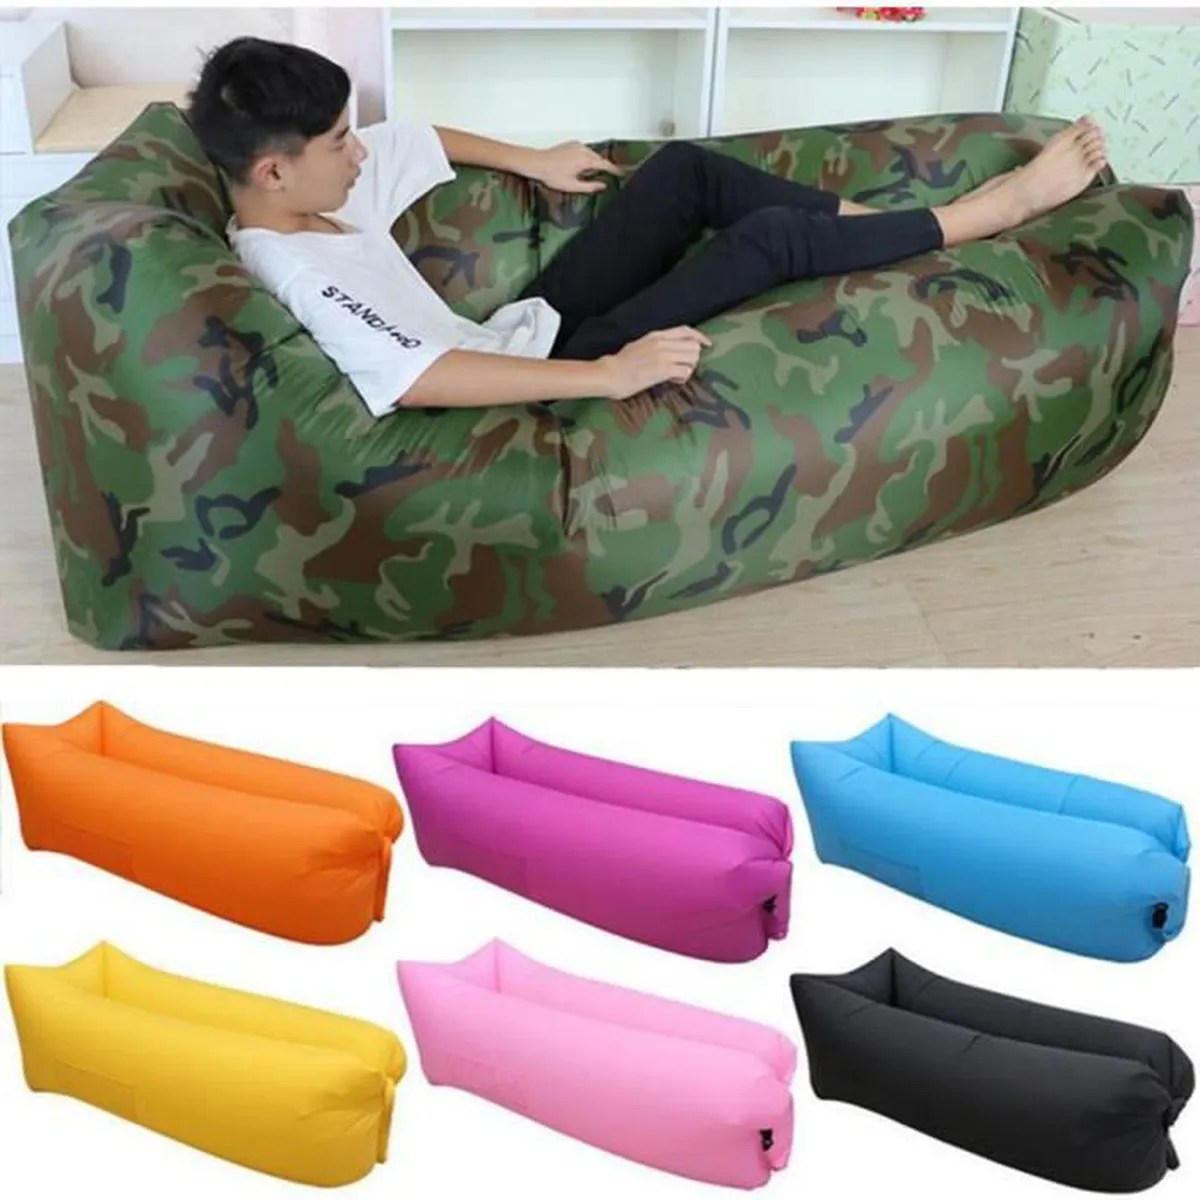 air canape gonflable chaise longue de plage portable canape matelas gonflable impermeable pour les signaux lazy camping camouflage